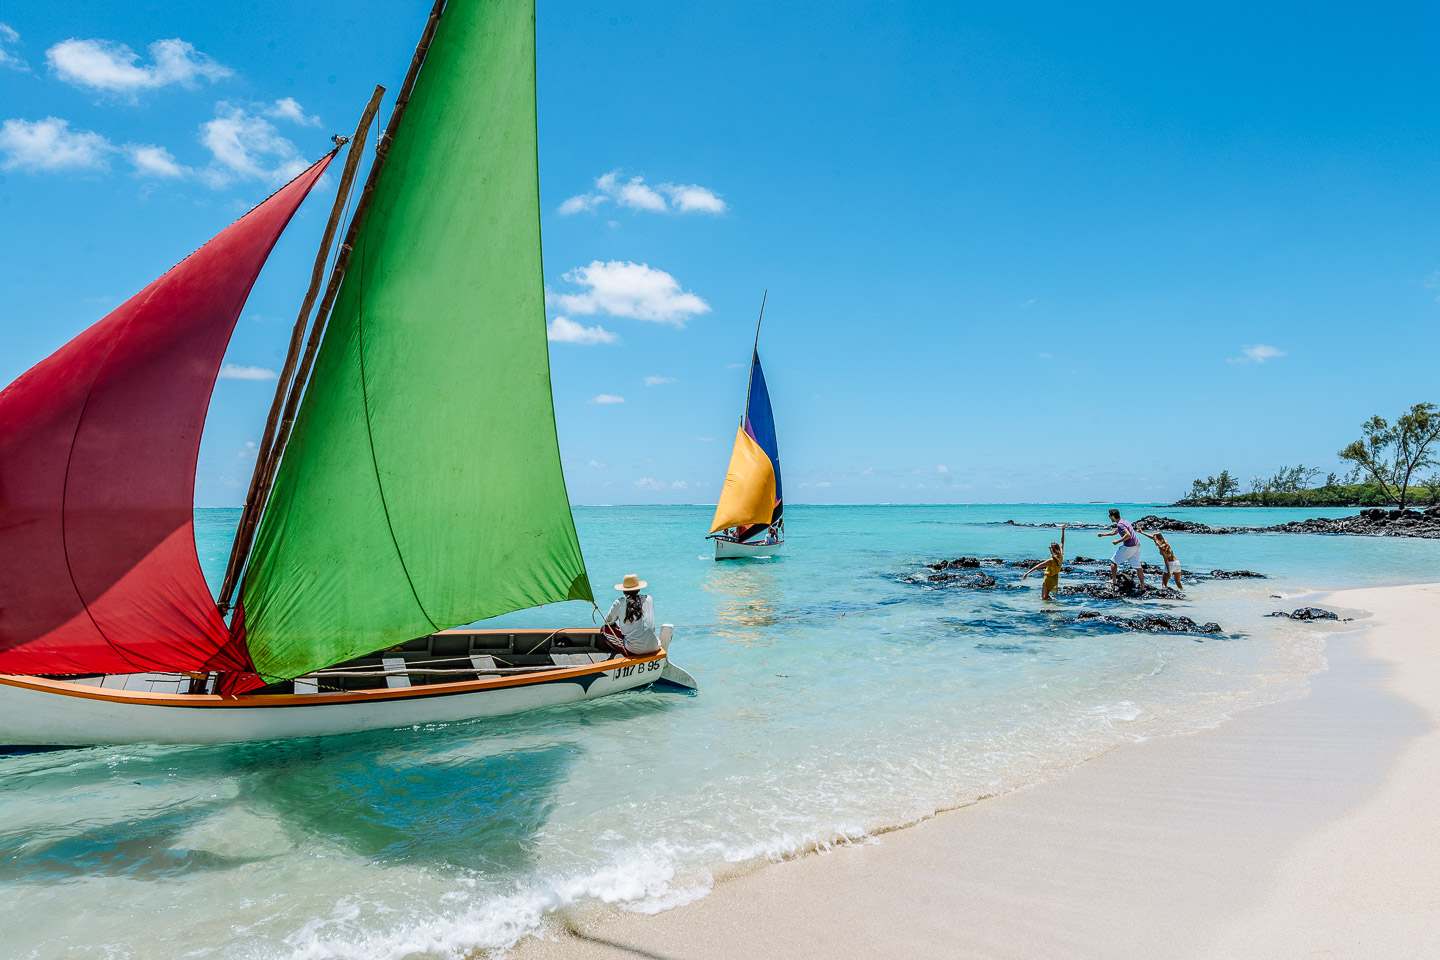 Indian Ocean Islands sail boats beach mauritius indian ocean islands